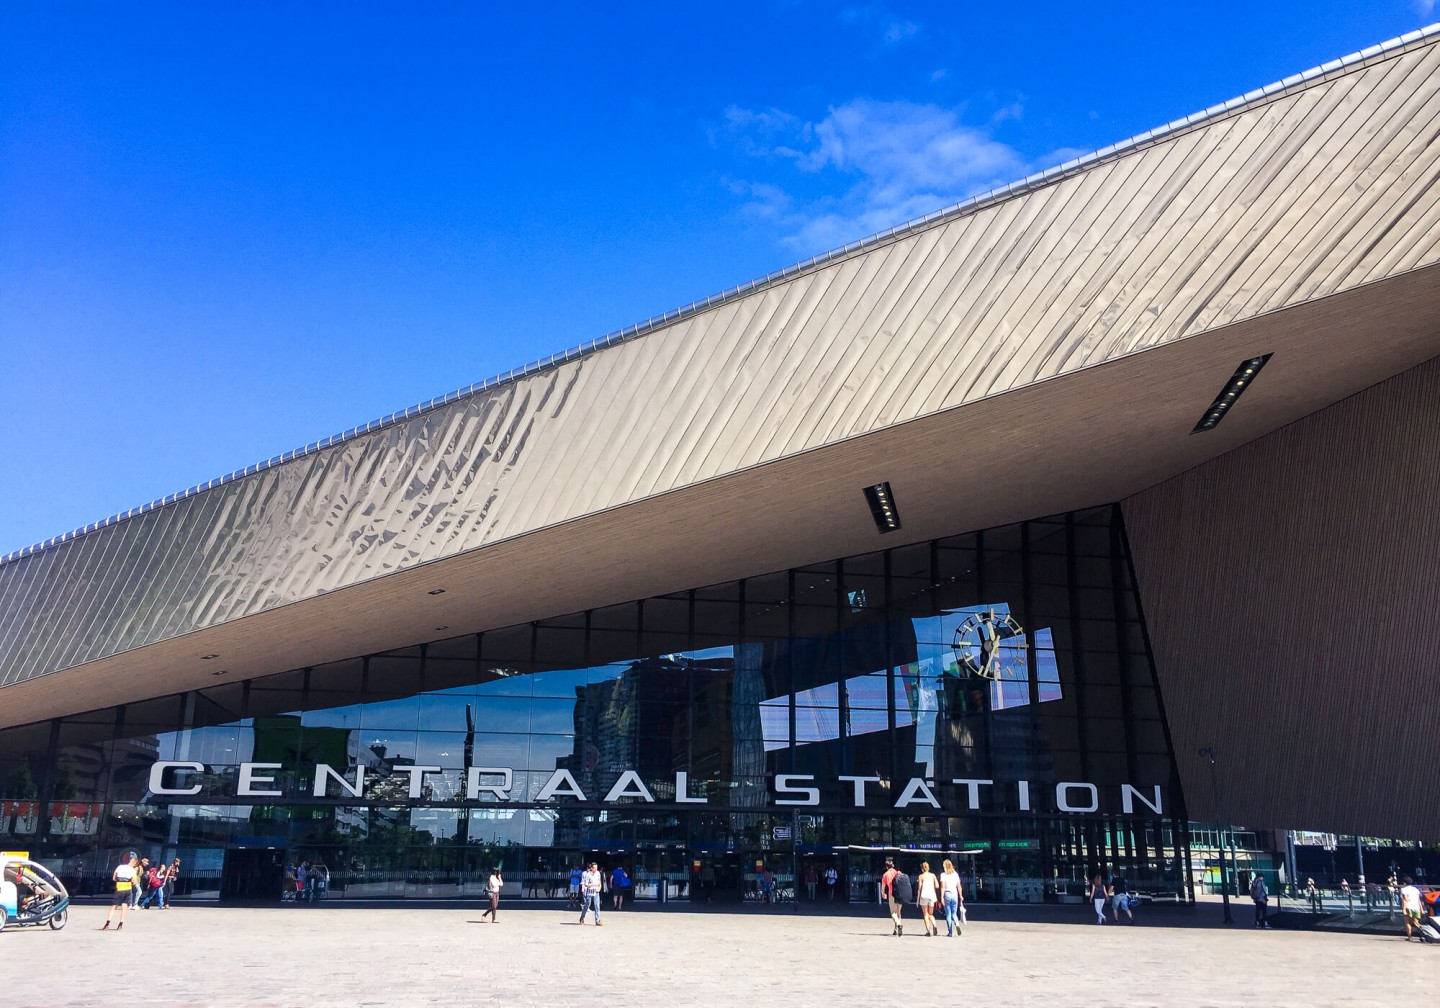 Rotterdam Centraal Station. Beautifully designed!